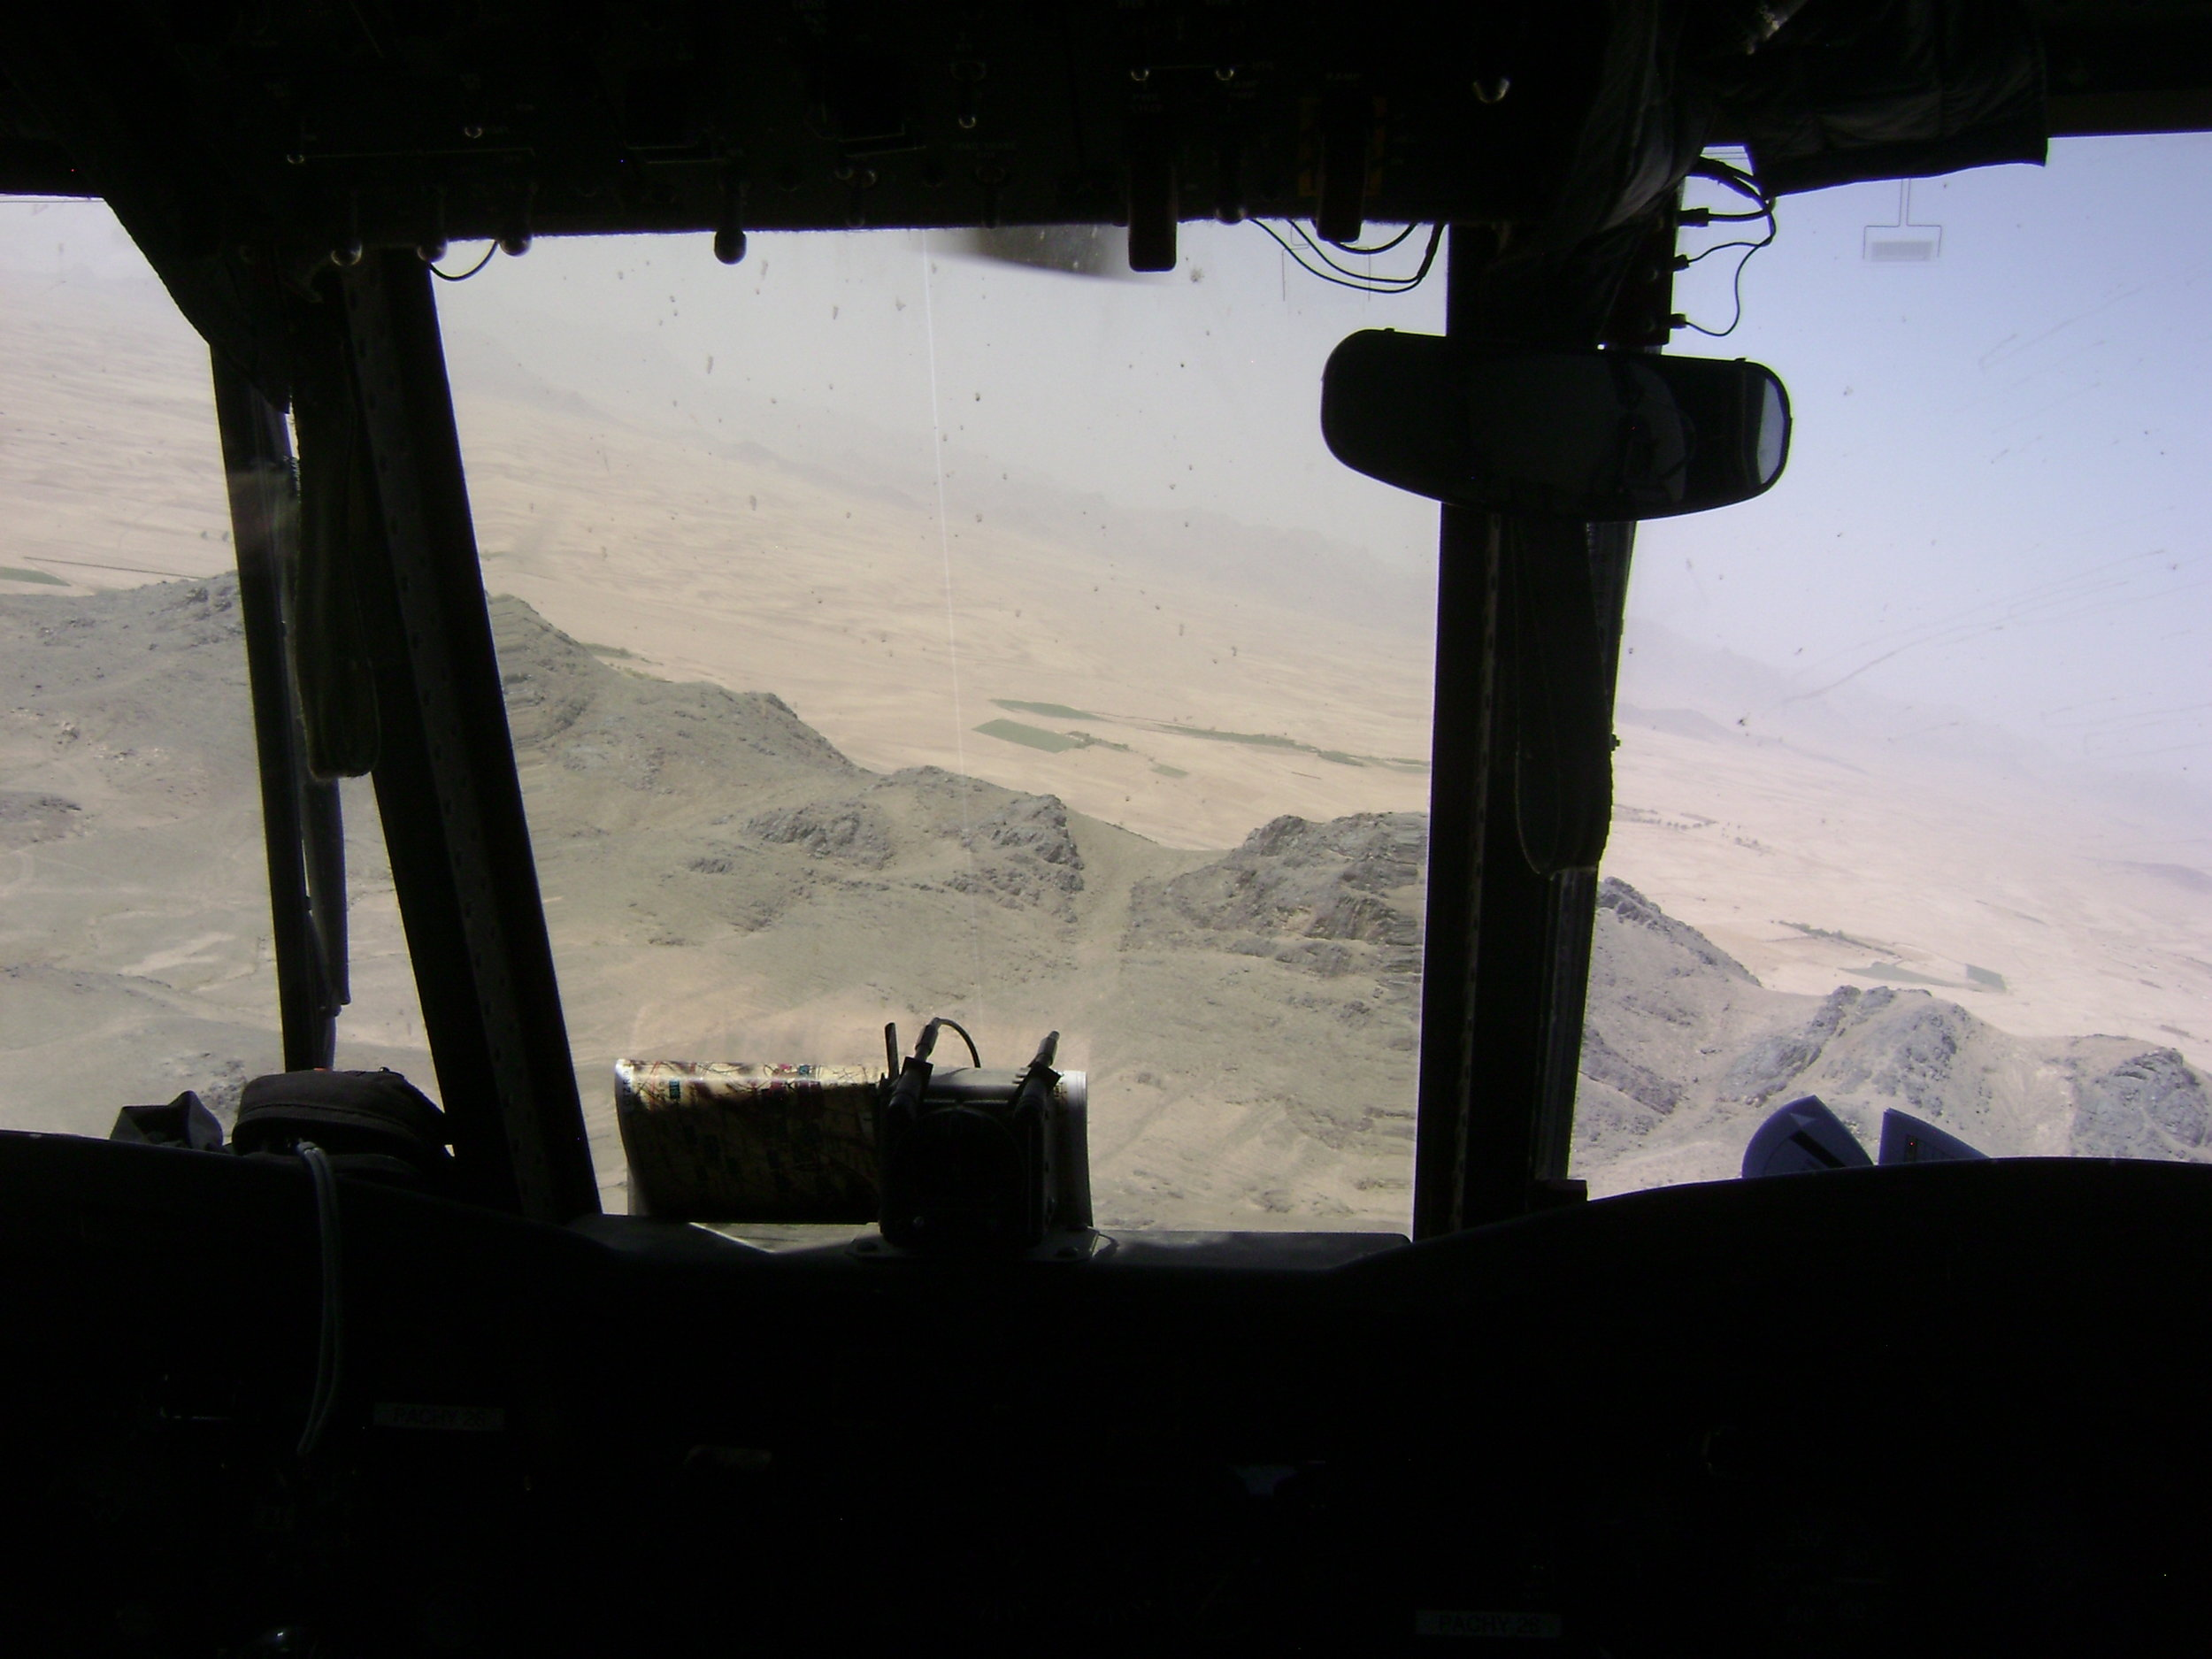 Hills of Afghanistan, through helicopter windshield.